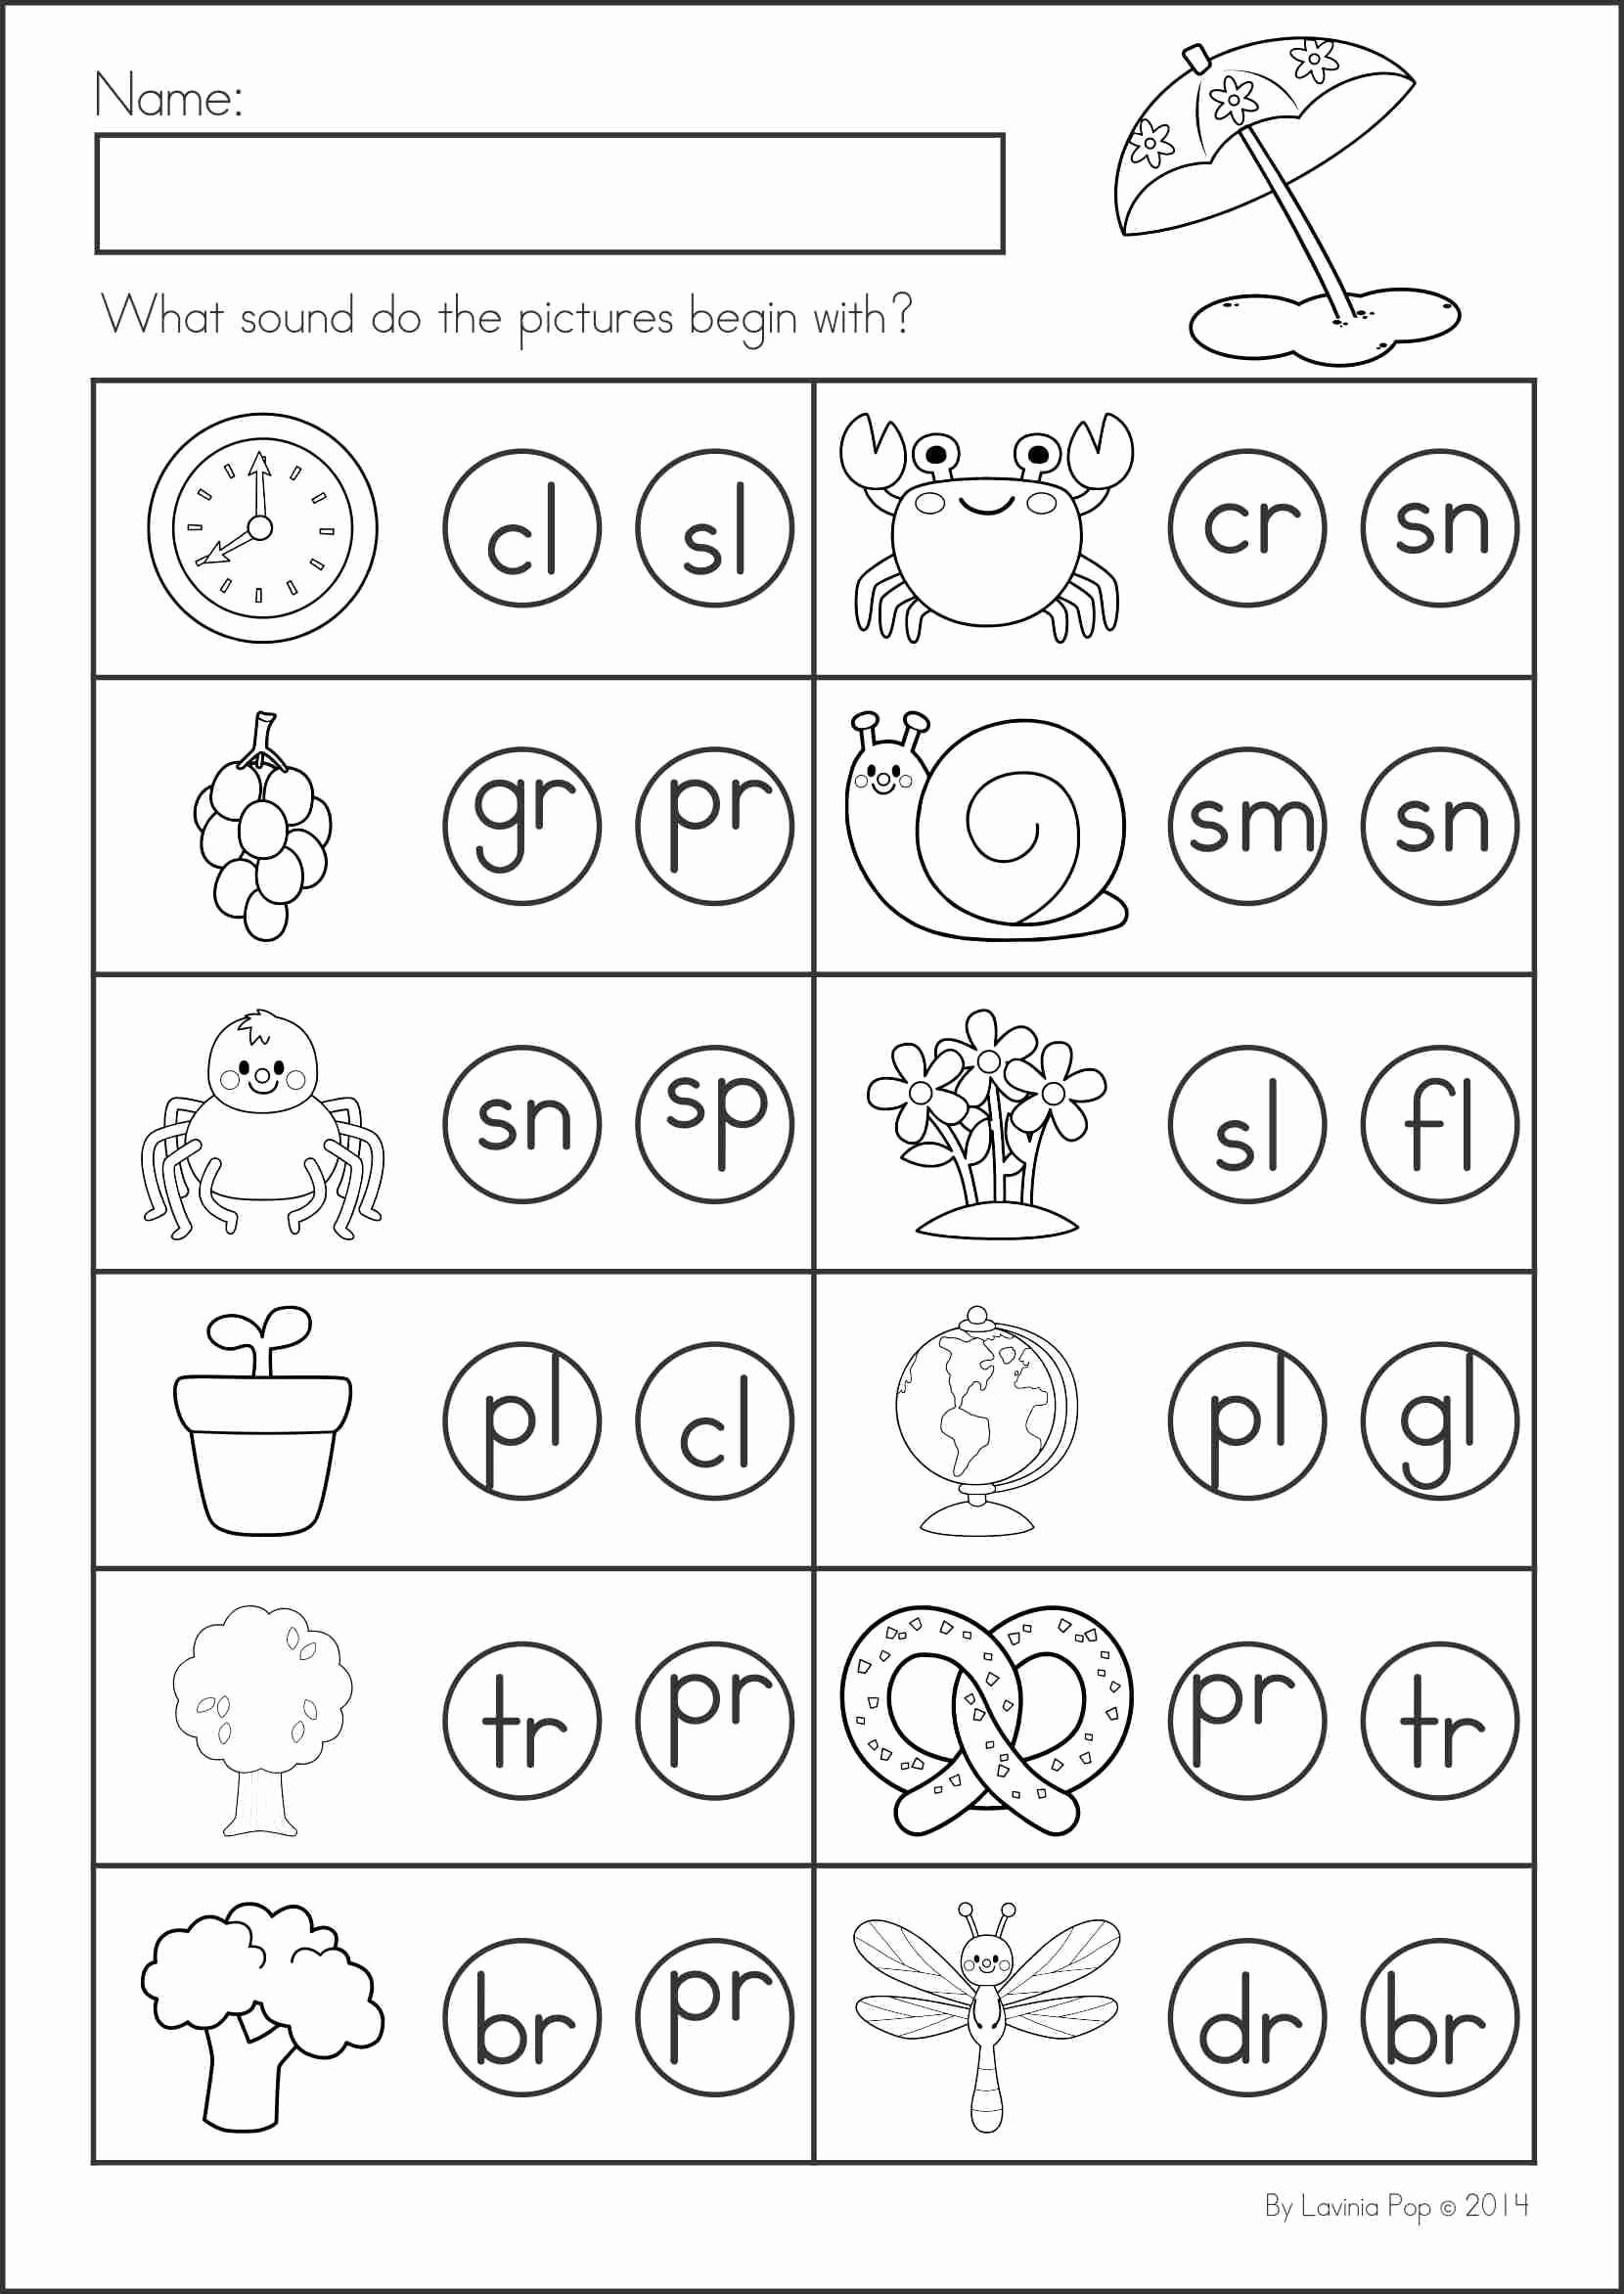 Exercise Worksheets for Preschoolers Awesome Worksheets Blends Worksheets for Kindergarten Practice